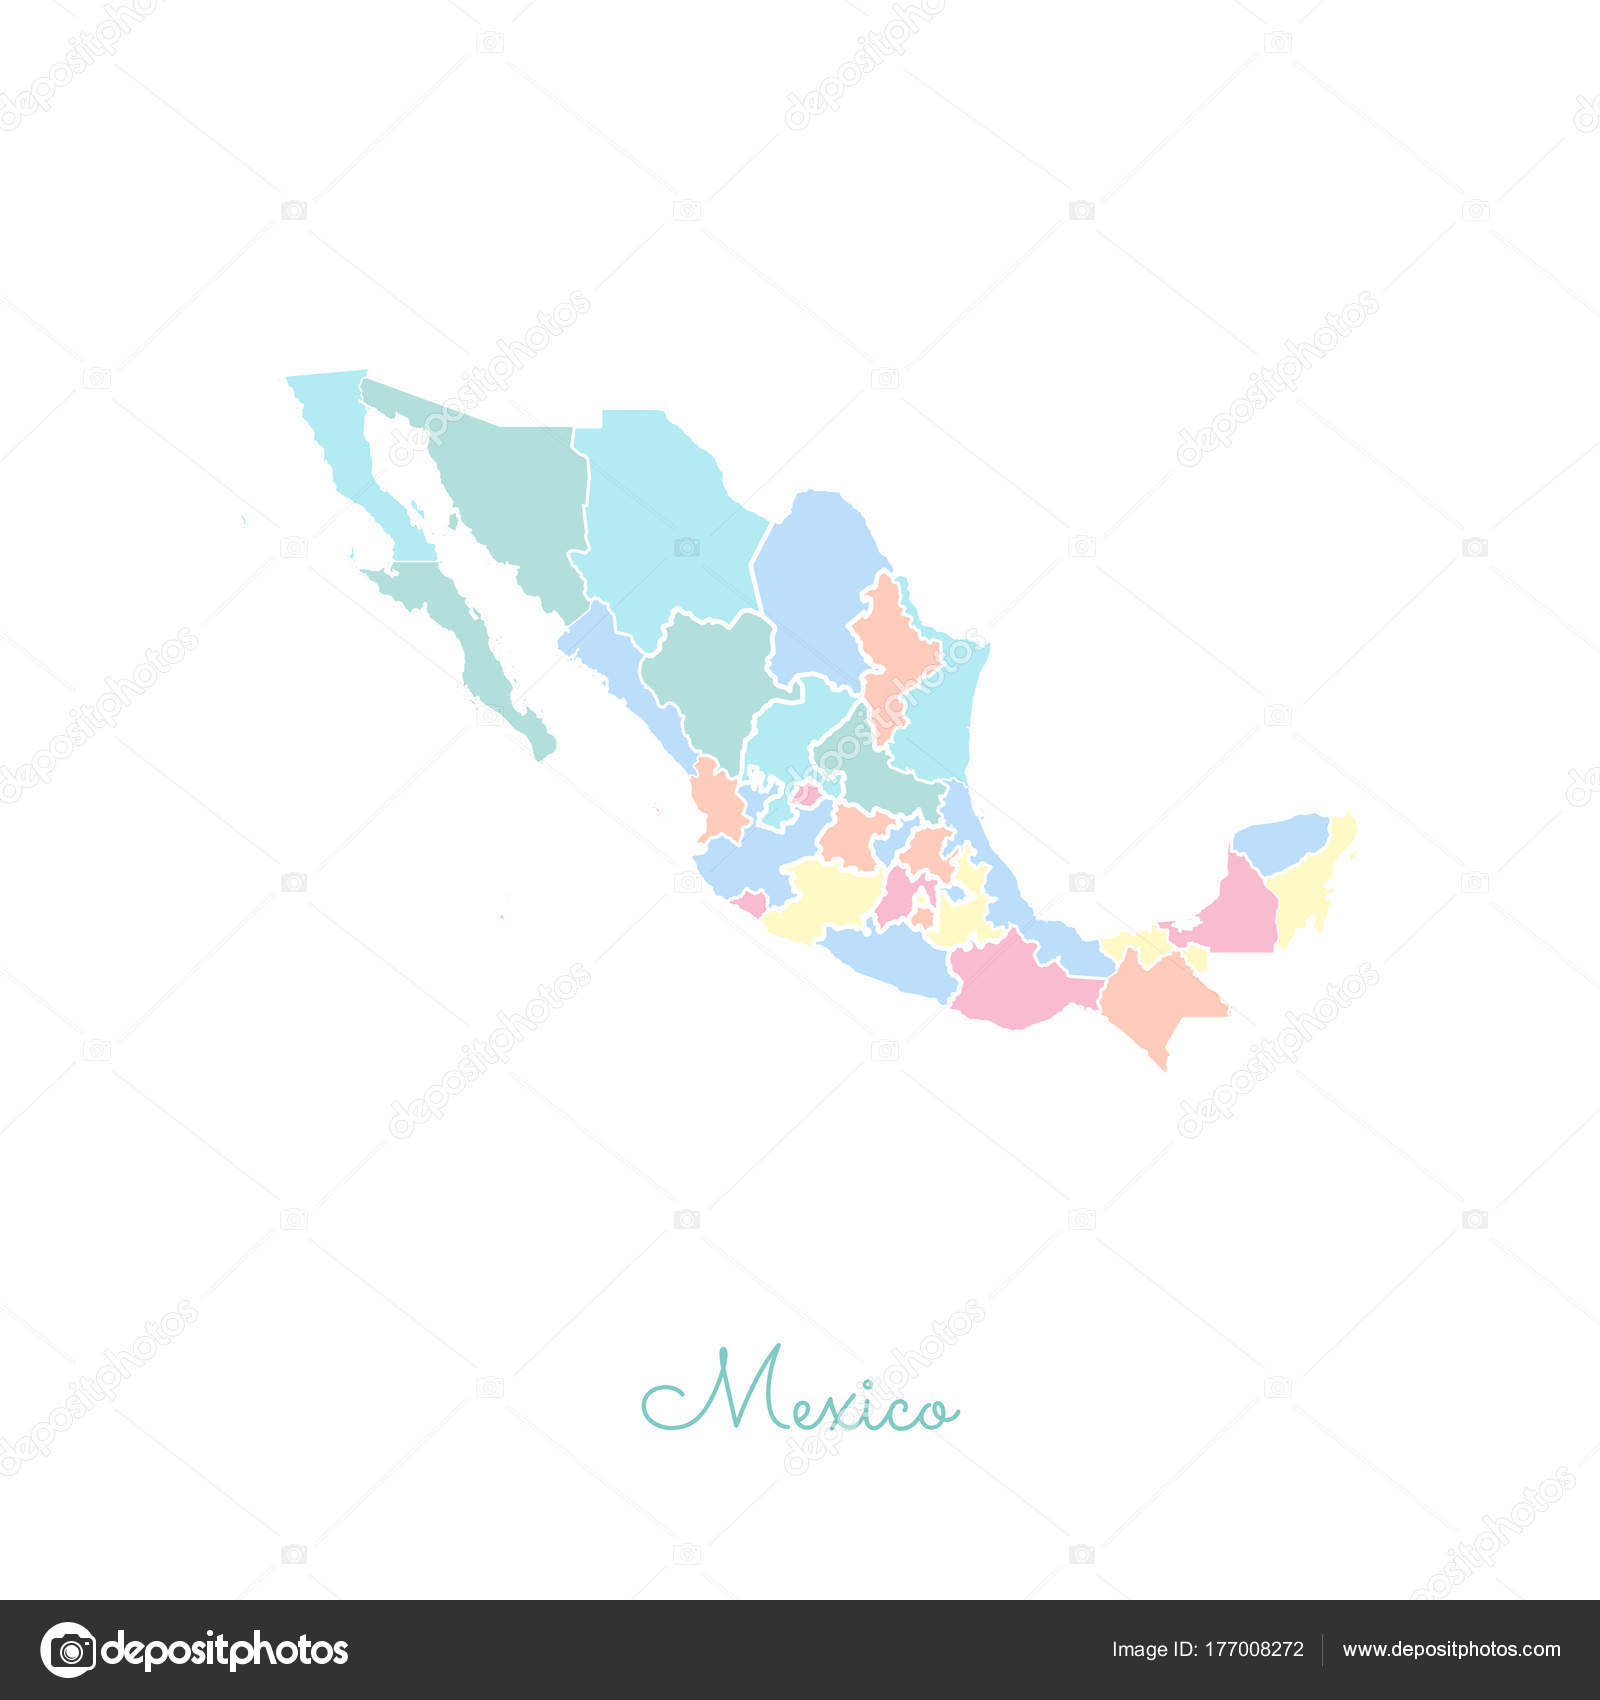 Mexico region map colorful with white outline Detailed map of Mexico ...